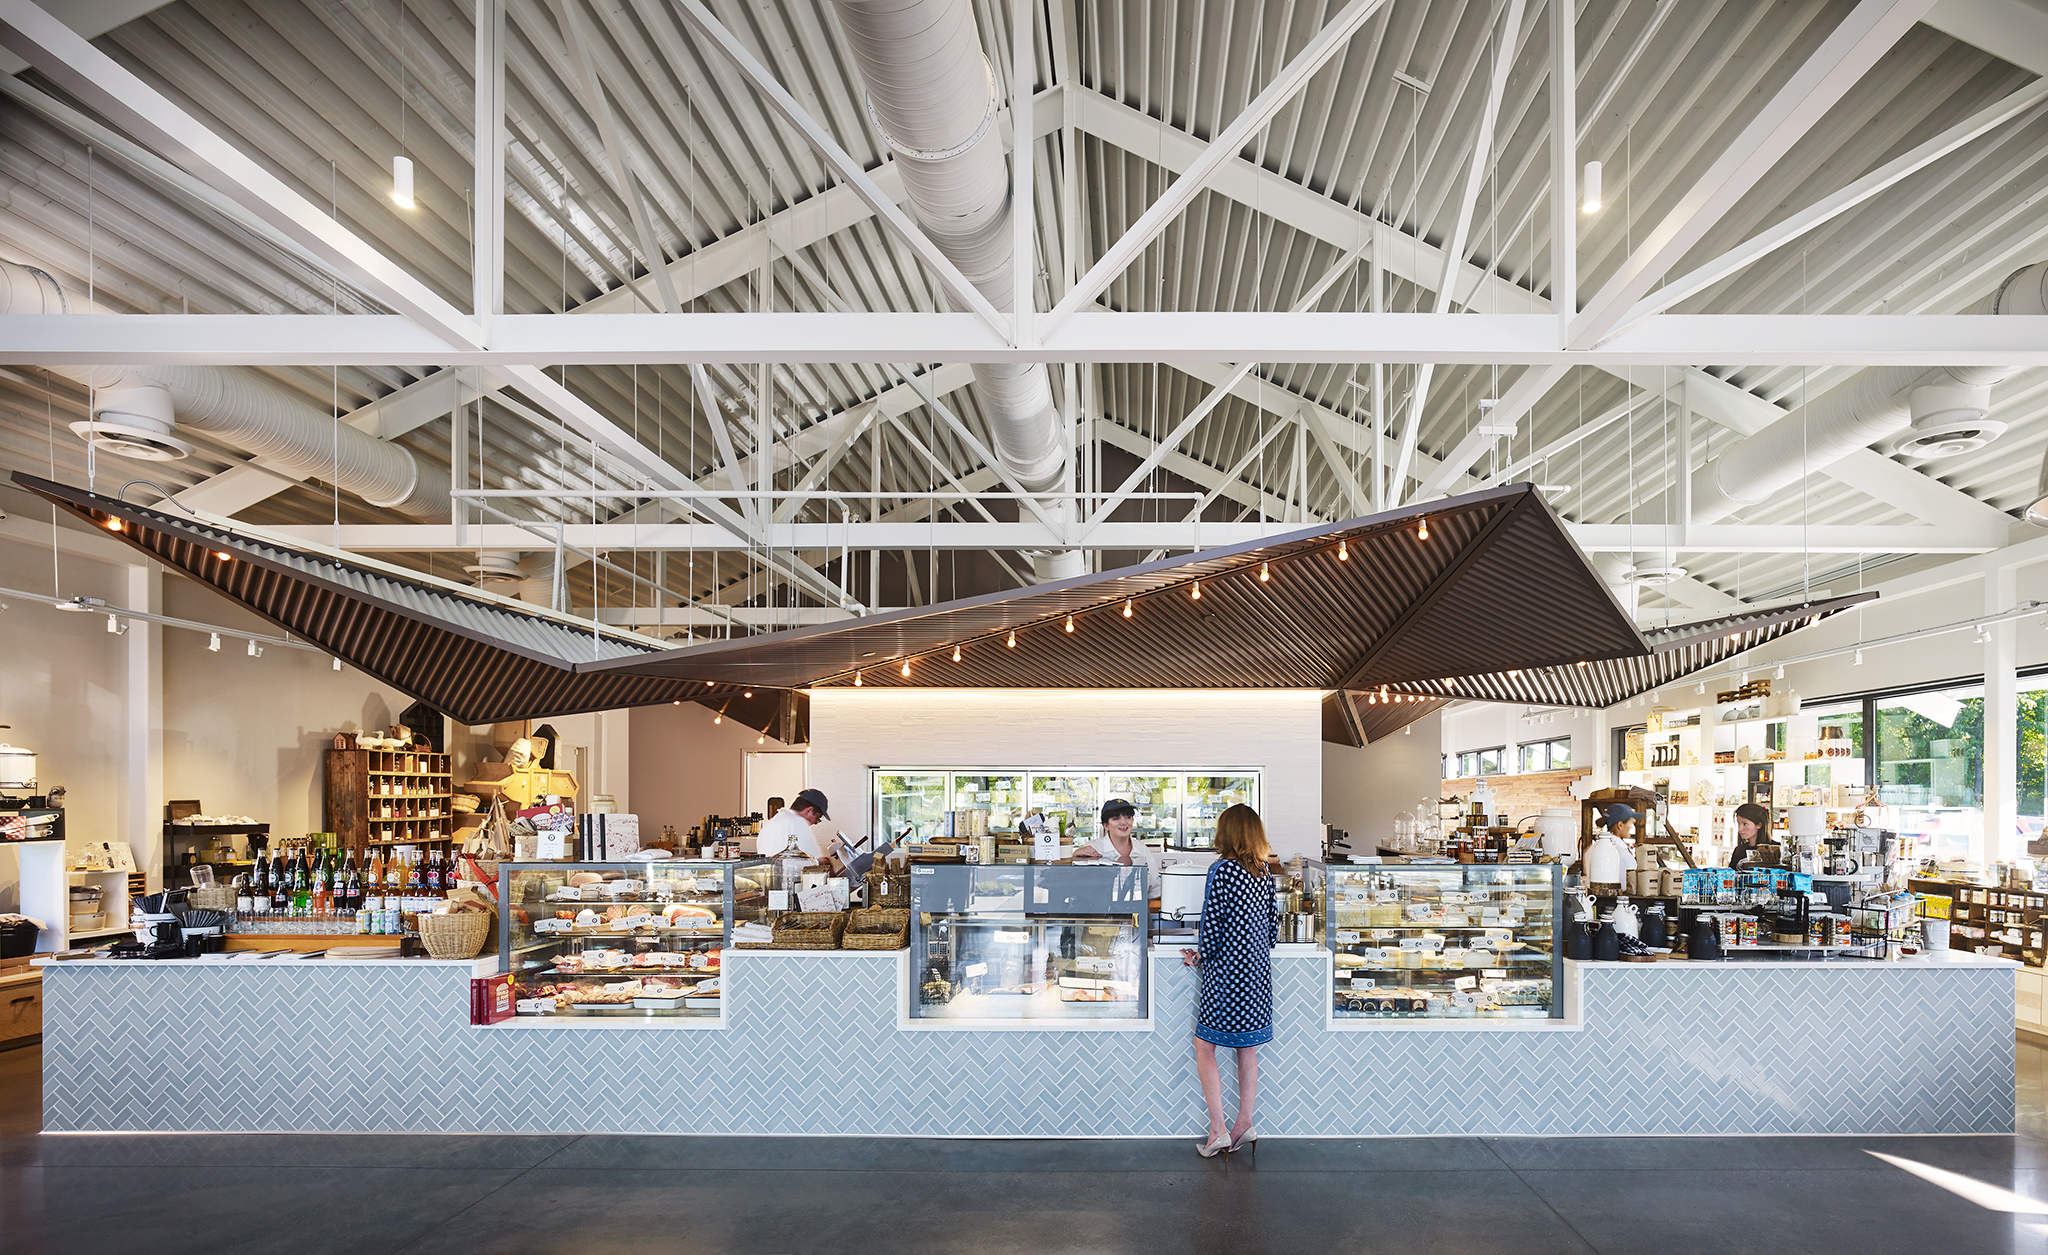 Star Provisions and Bacchanalia Restaurant  Perkins+Will  Atlanta, Georgia      Return to Projects